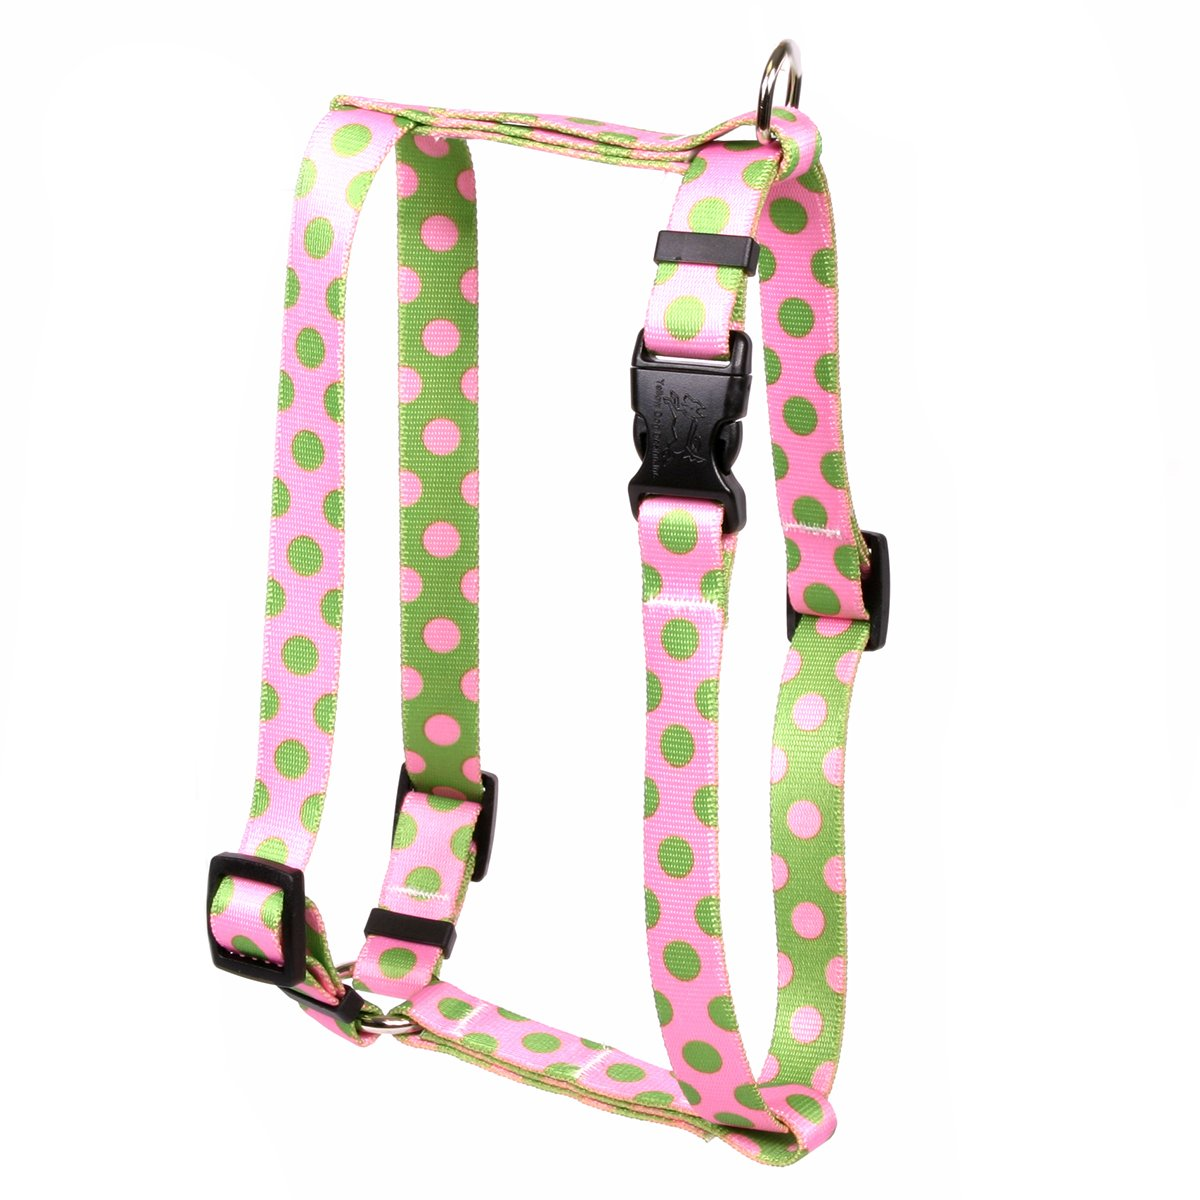 Yellow Dog Design Pink Green Polka Dot Roman Style H Dog Harness, Large-1'' Wide fits Chest of 20 to 28'' by Yellow Dog Design